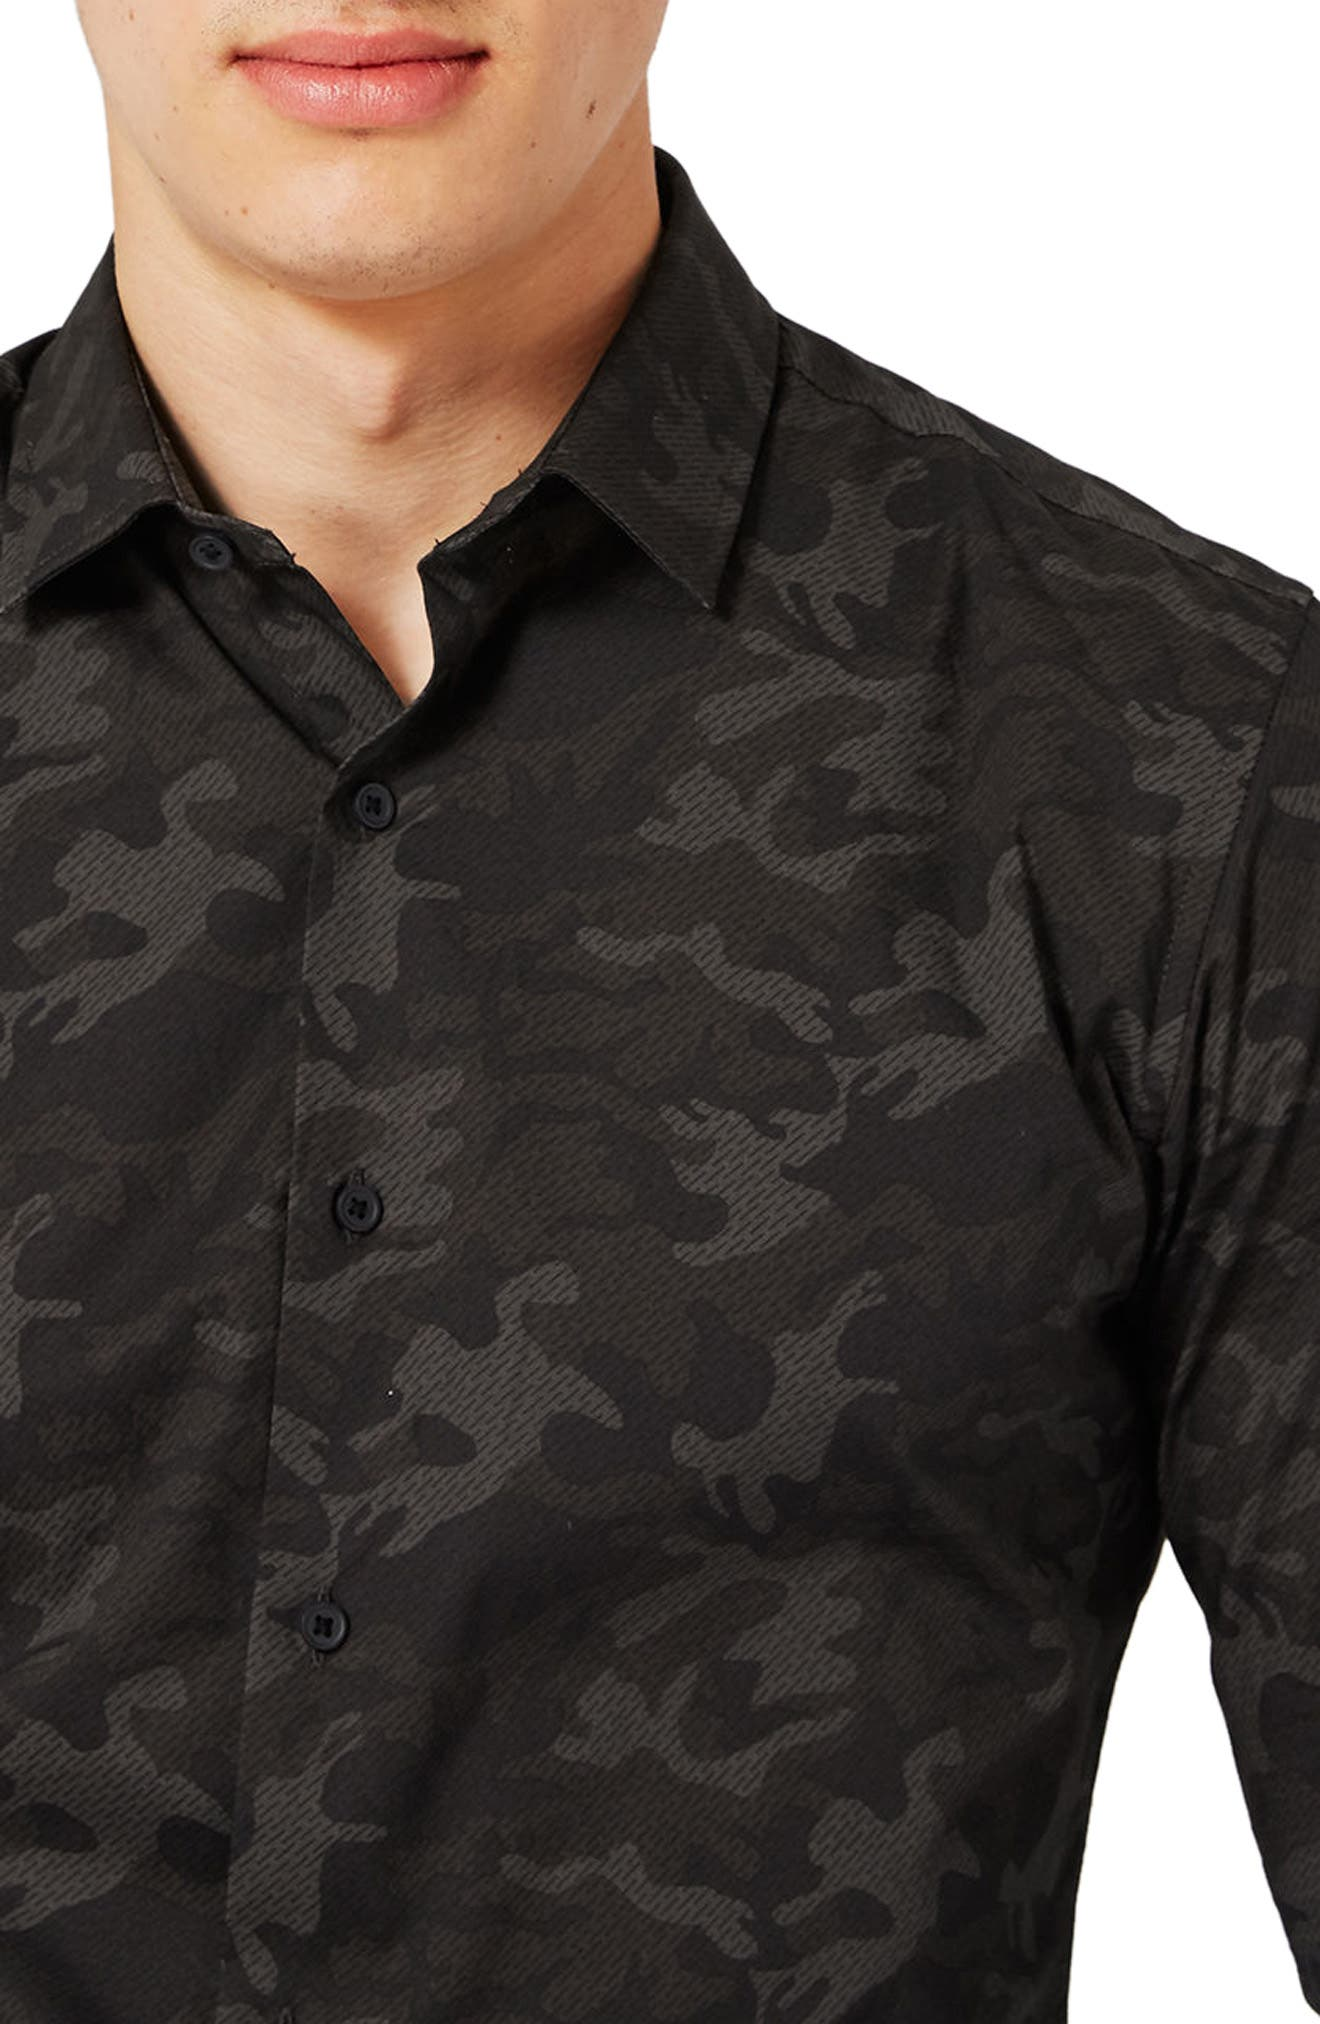 Camo Print Dress Shirt,                             Alternate thumbnail 3, color,                             301